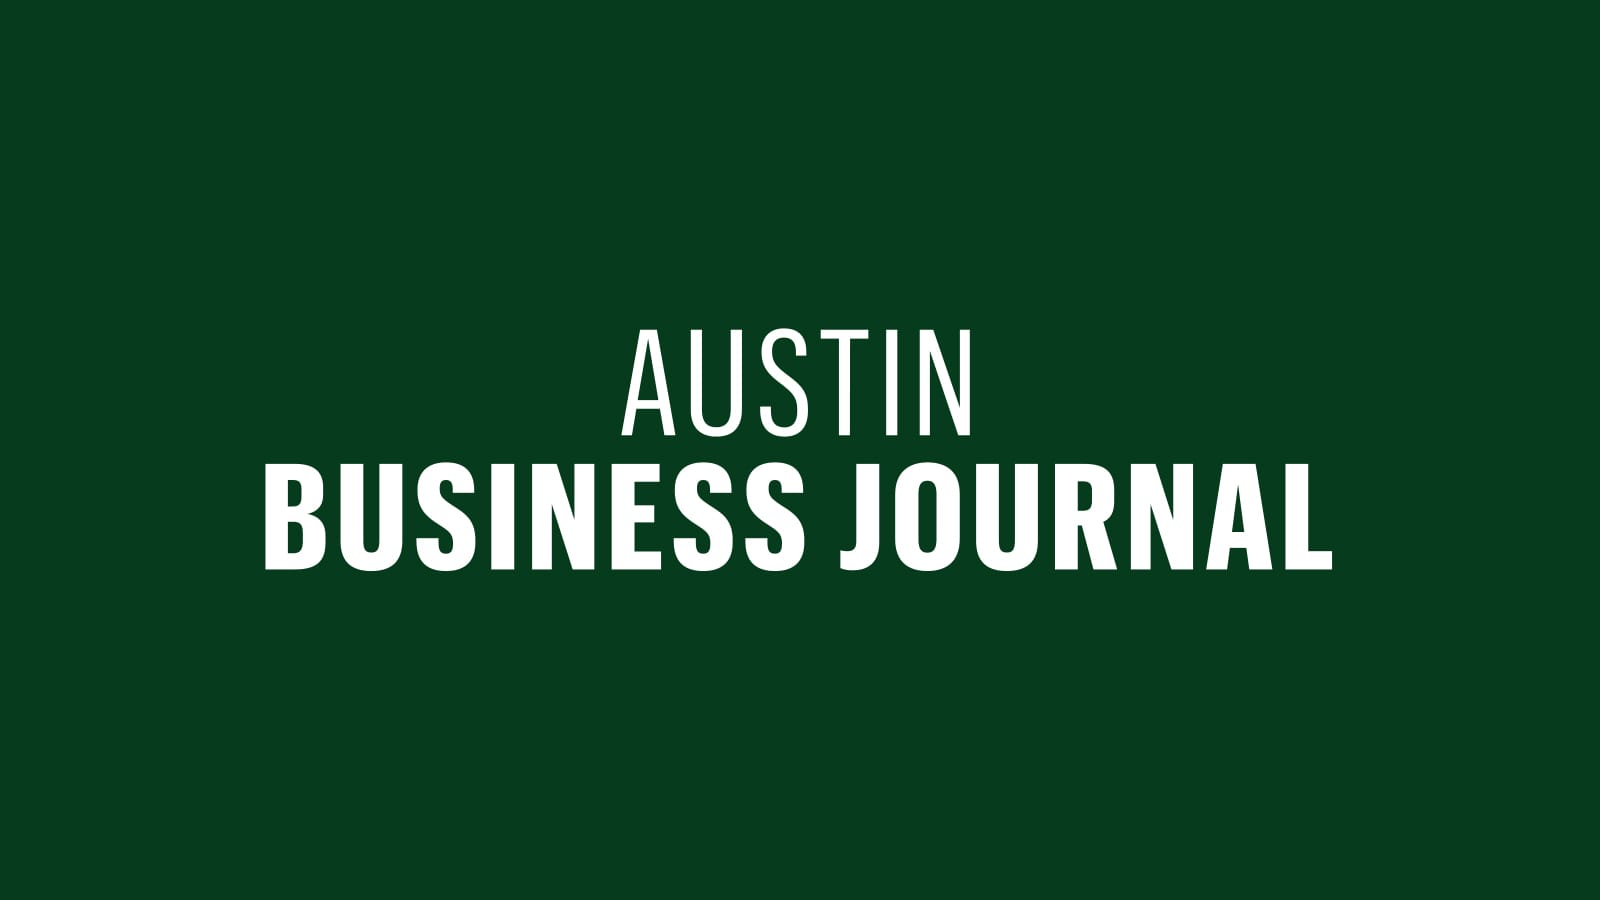 austin-business-journal-logo